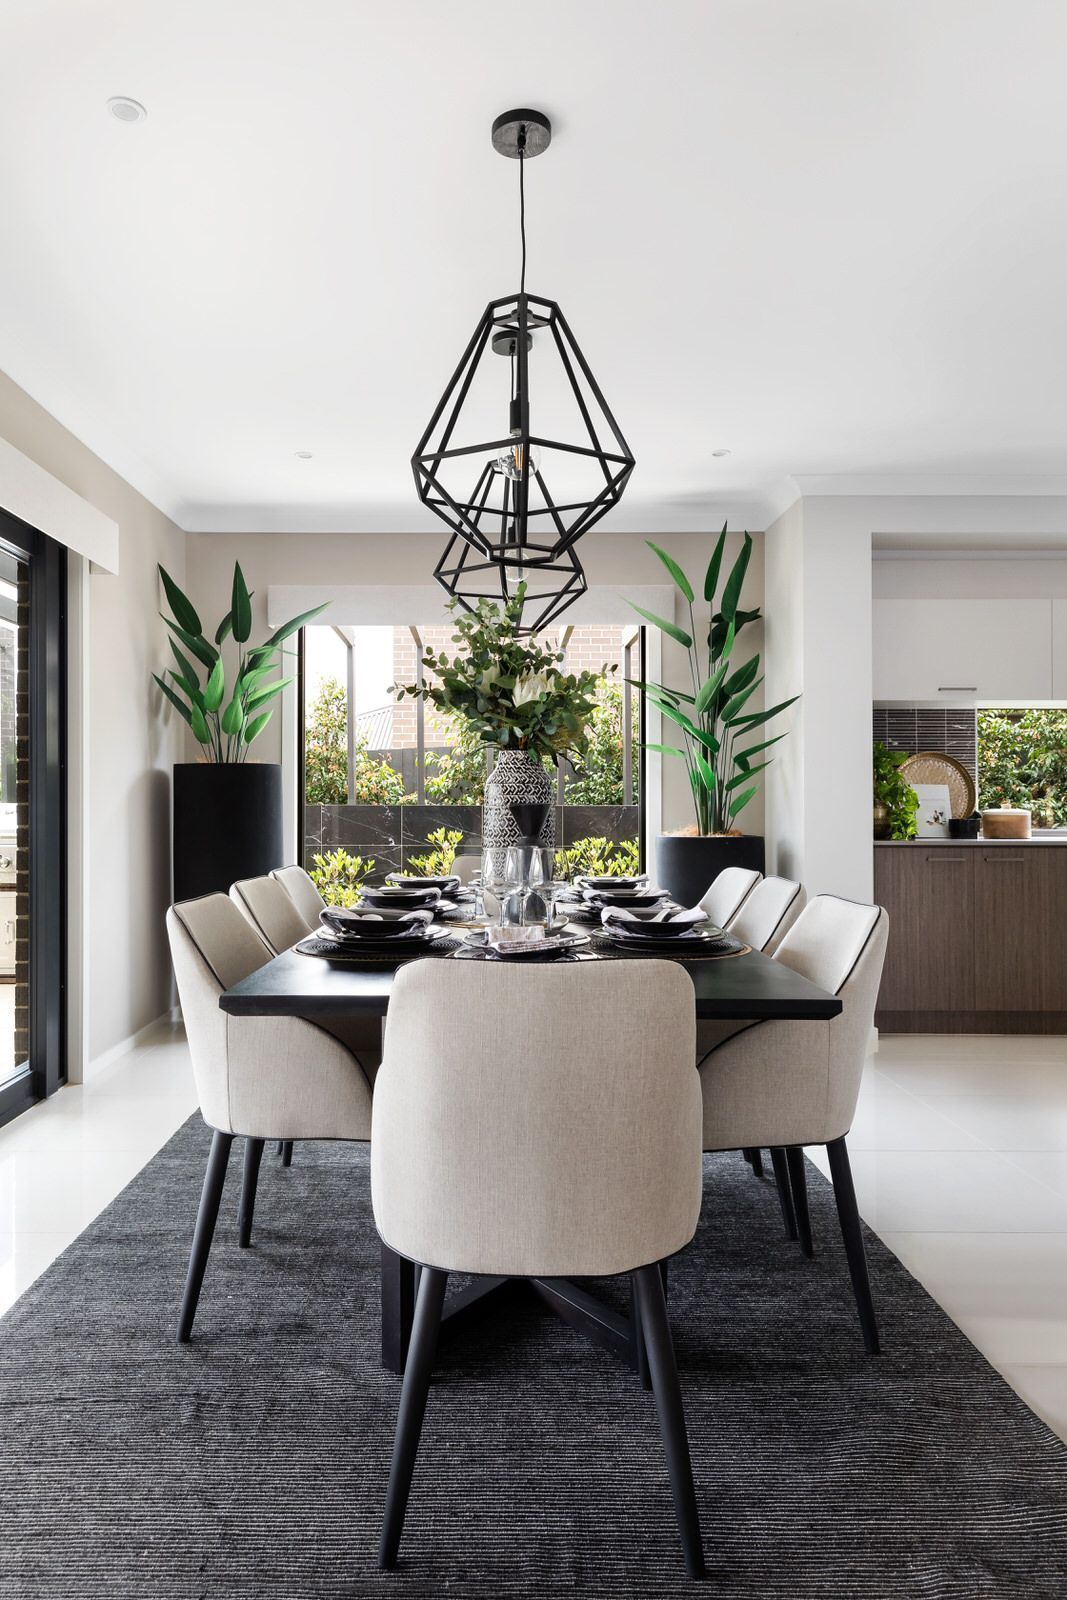 Fall in love with the most dazzling centerpiece ideas for your dining room decor | #diningroomlighting #diningroomdecor #diningroomlamps #diningroomdesign #diningroomdecorideas #diningroomdesign #diningroomlighting